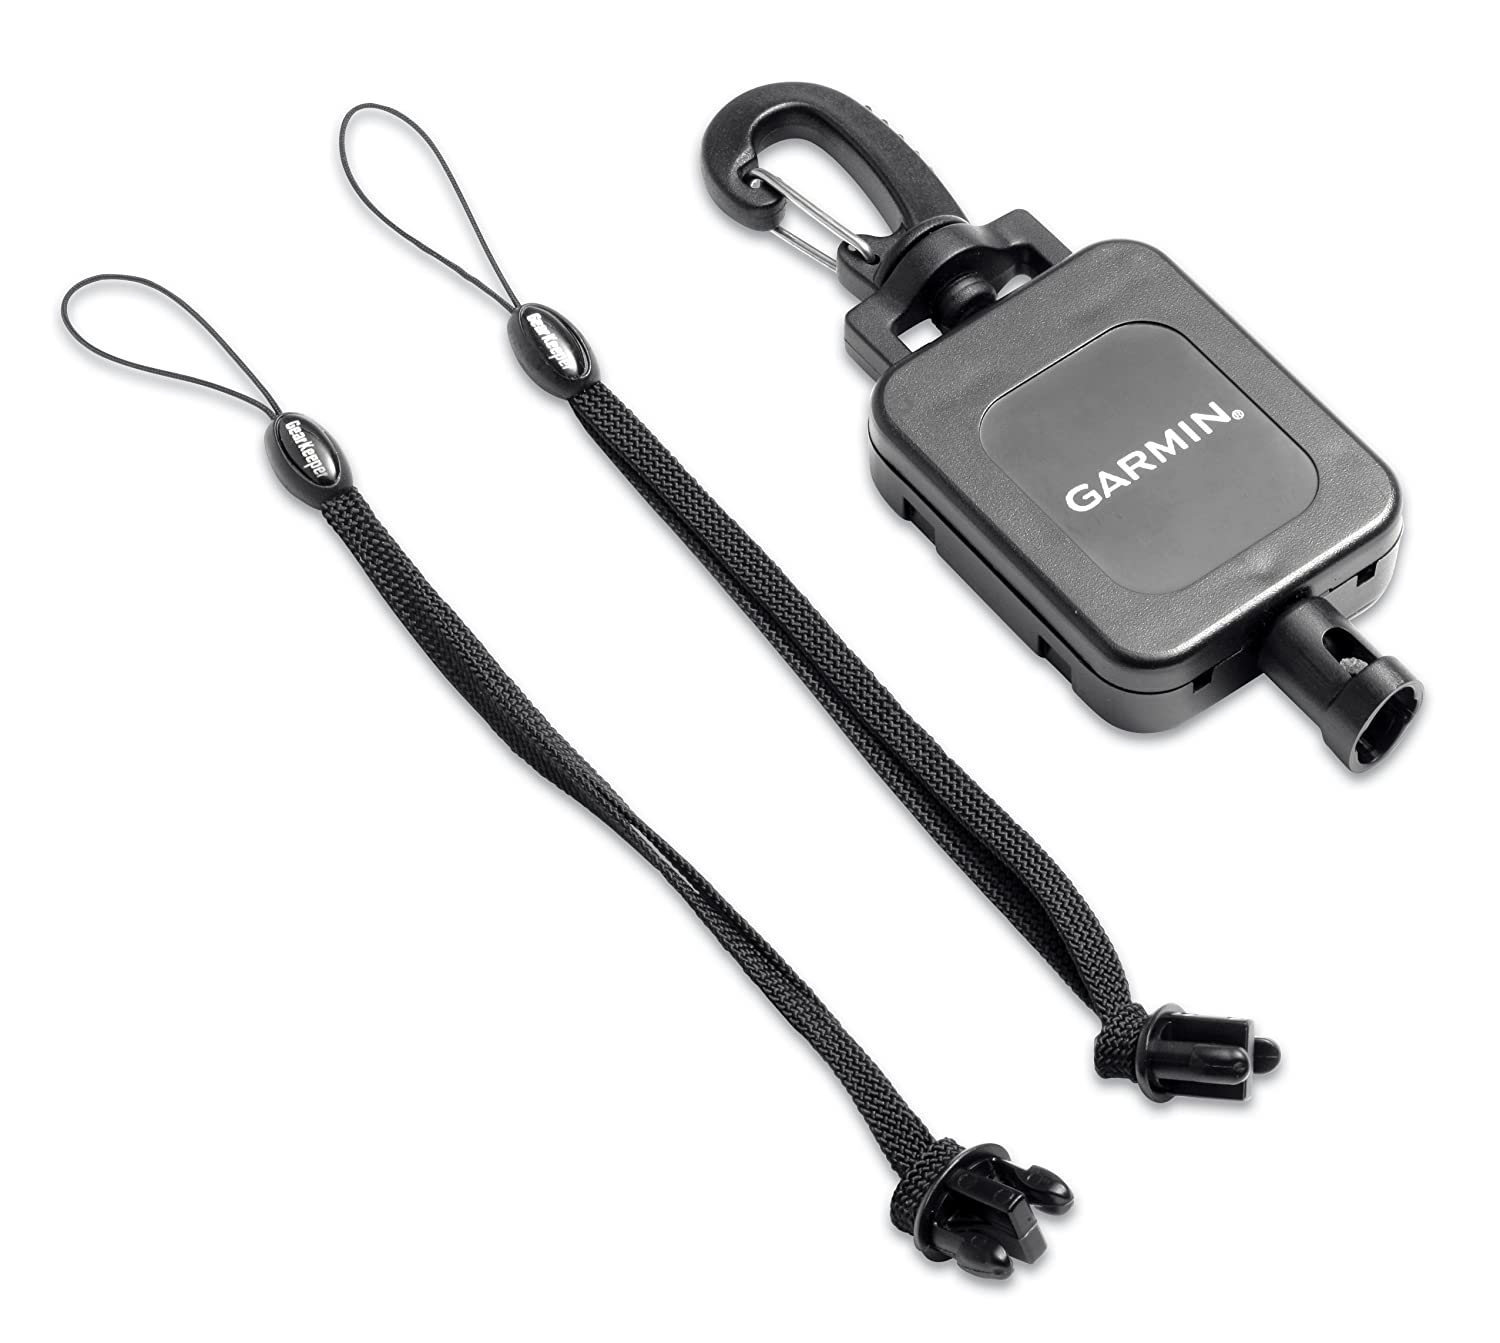 Garmin Retractable tether (Discontinued by Manufacturer) 010-10888-00